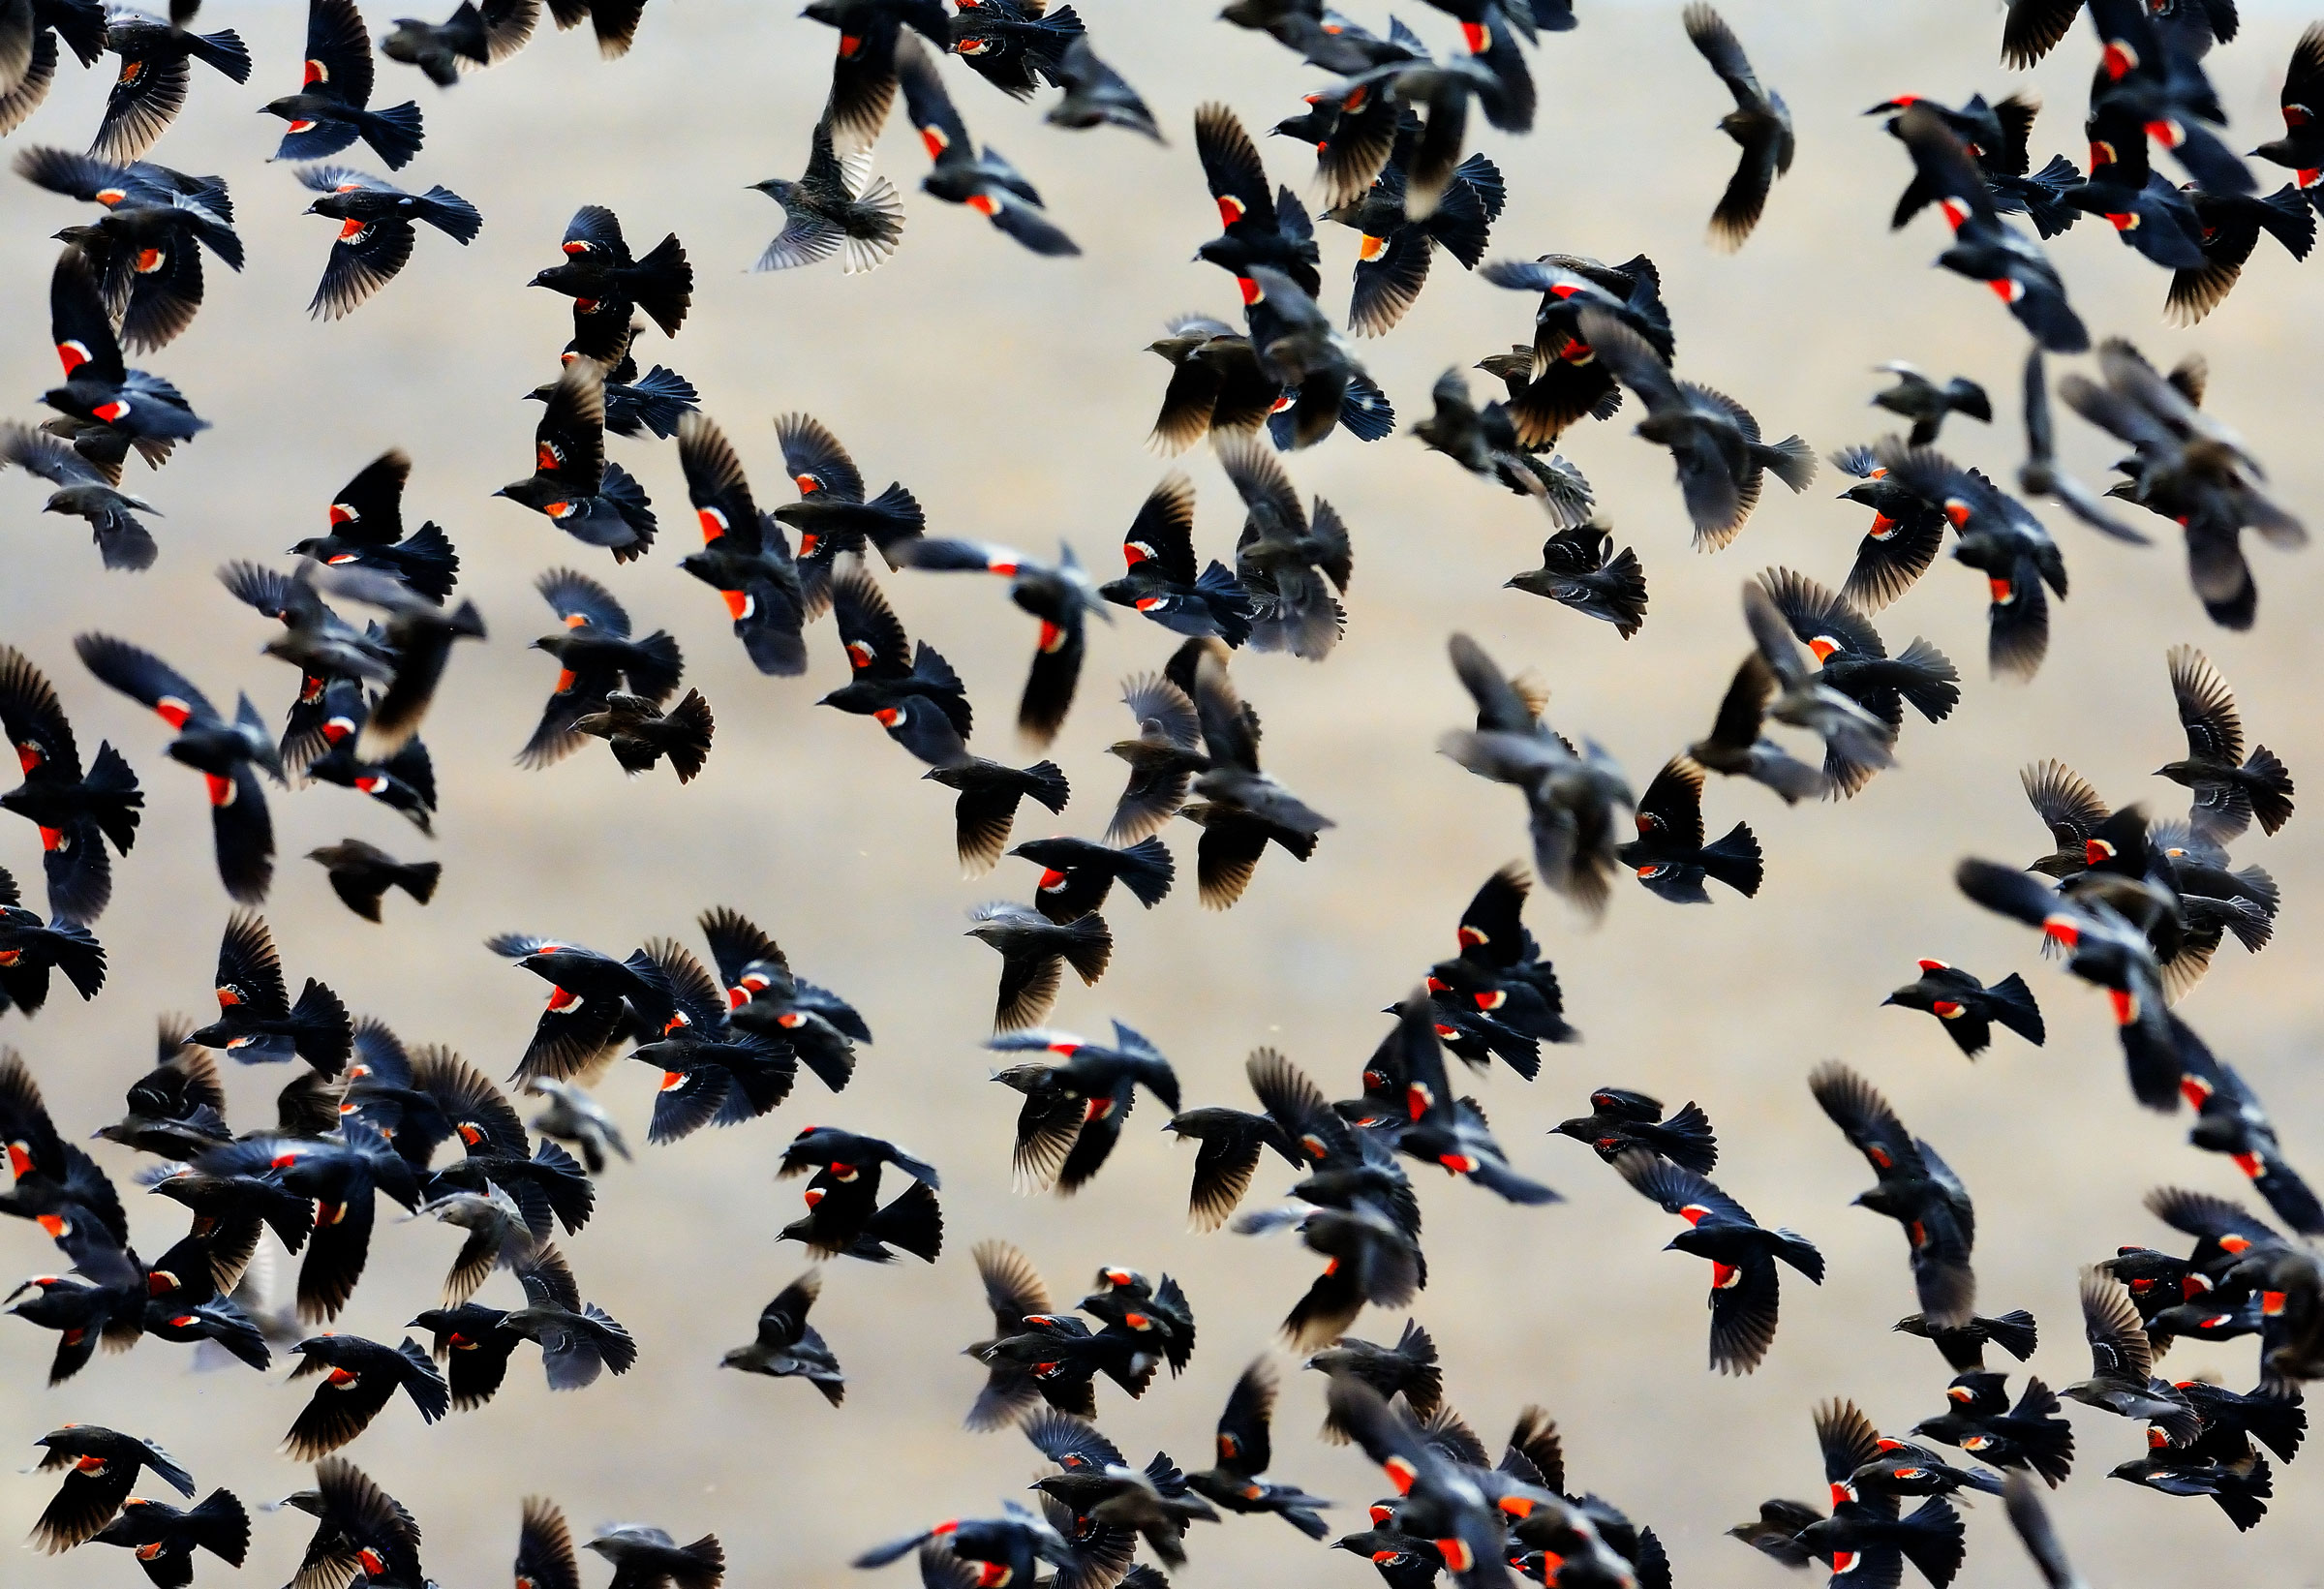 Tricolored Blackbirds nest in colonies of thousands of birds, so each colony is a significant part of the species' total population. Jerry Ting